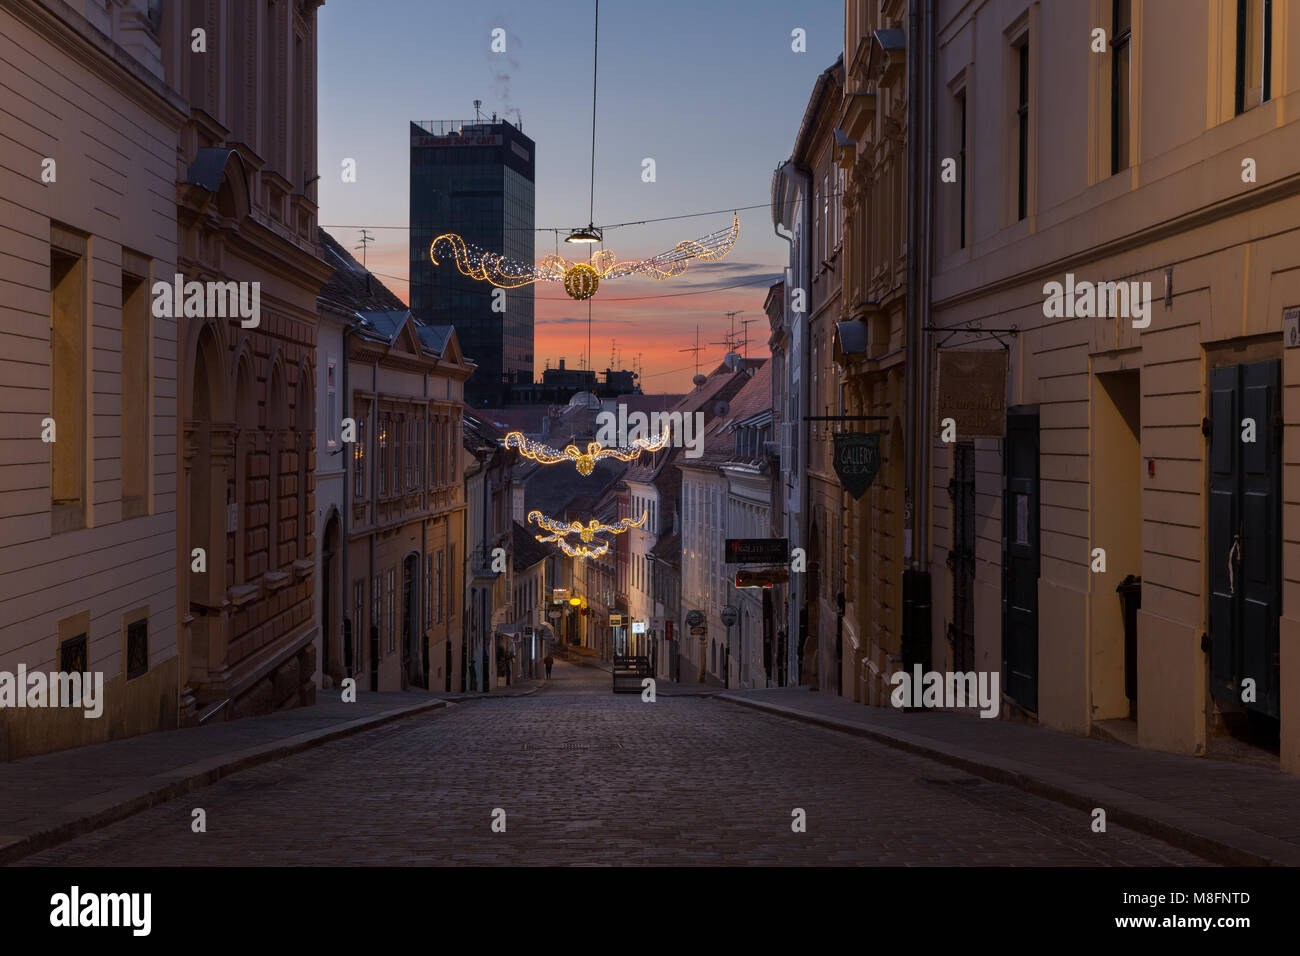 Street in old town Zagreb decorated for the advent, Croatia - Stock Image